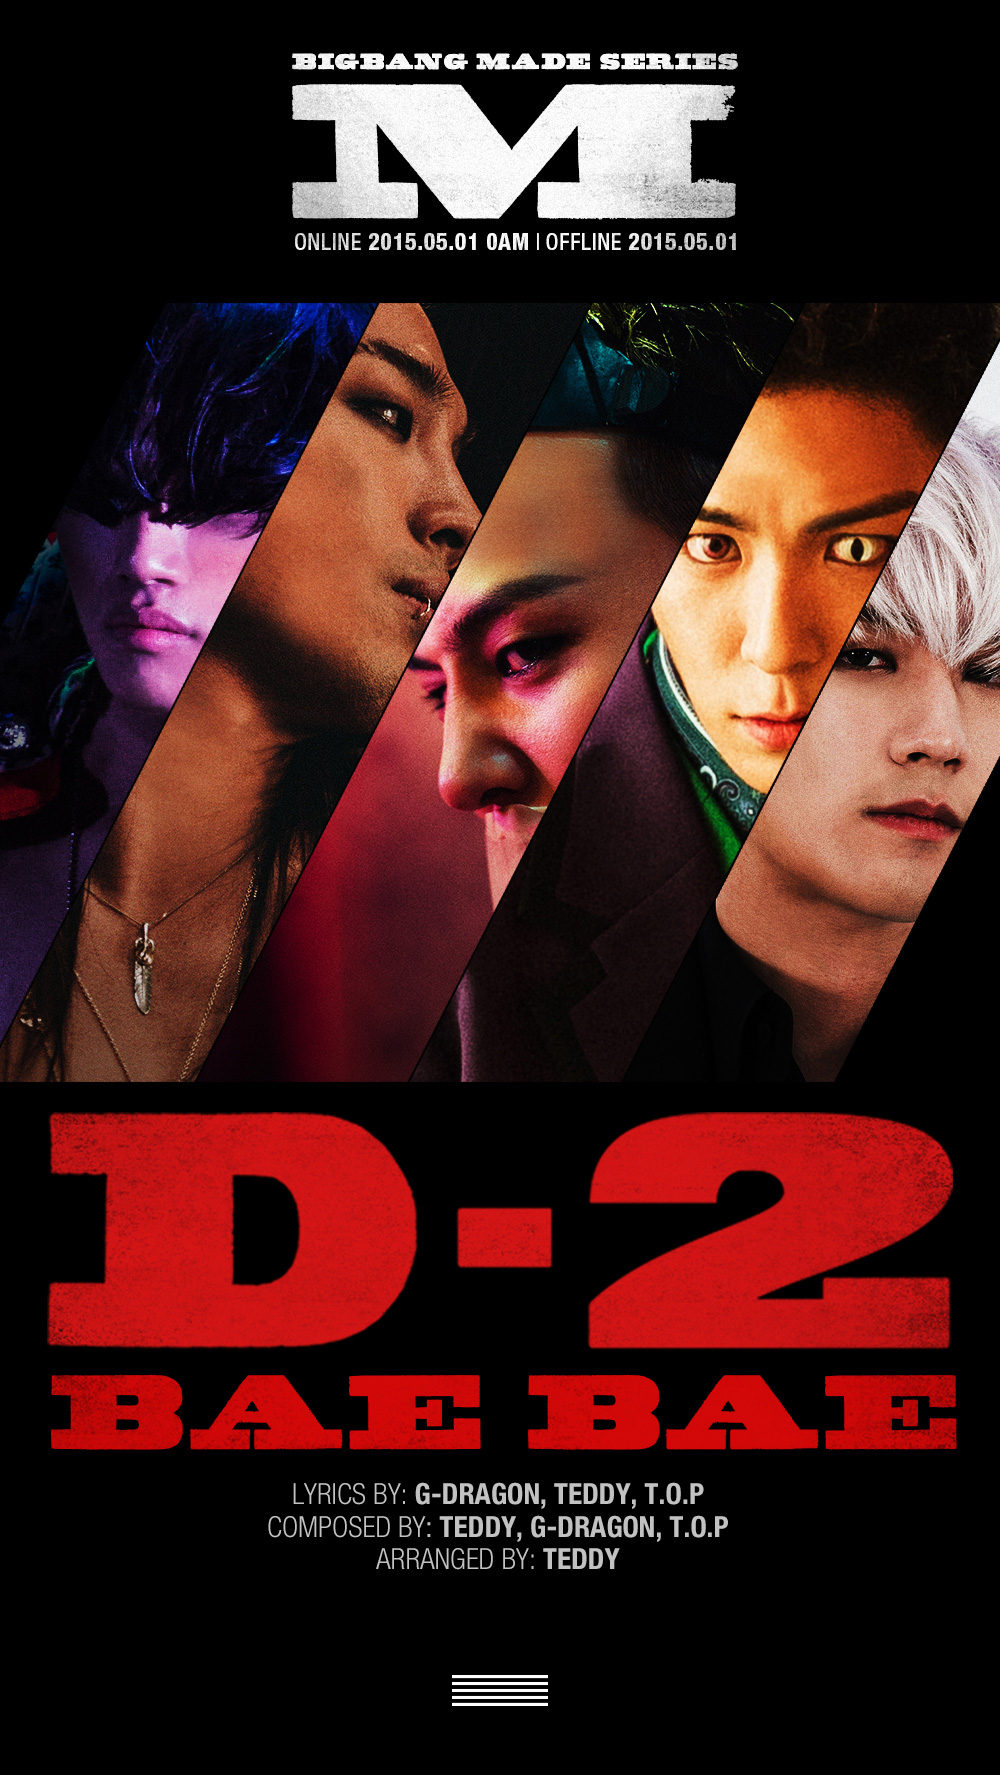 bigbang-made-02